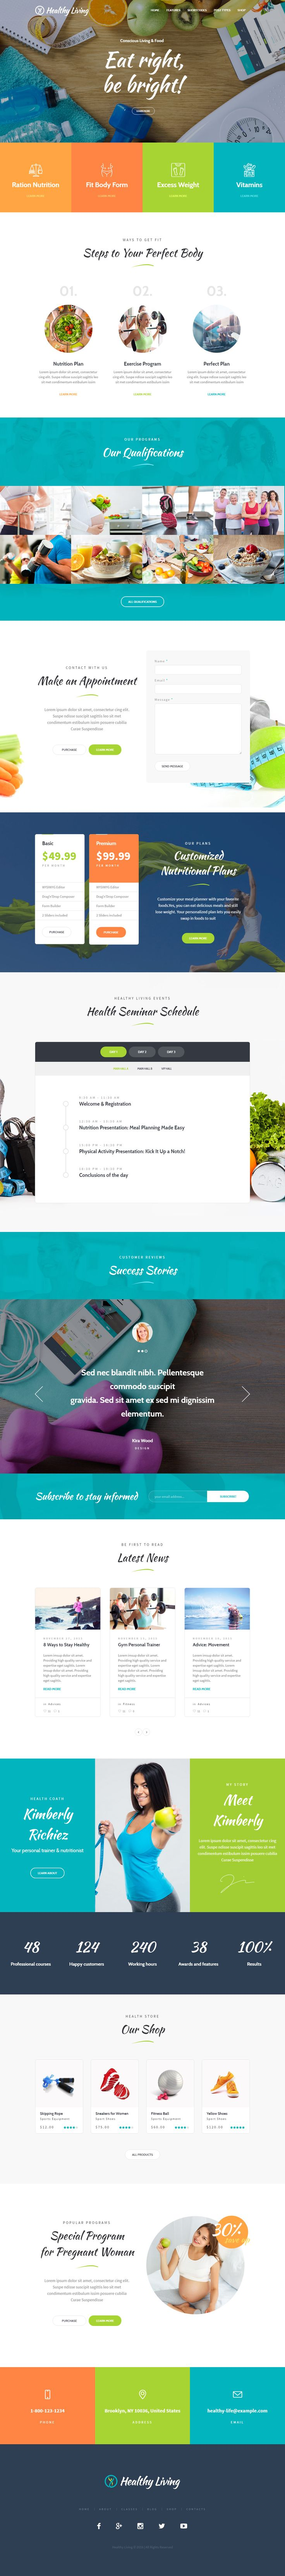 Healthy Living is Premium Responsive Retina Parallax #WordPress Theme. If you like this #Nutrition Theme visit our handpicked list of best #Food Themes at: http://www.responsivemiracle.com/best-food-wordpress-themes/